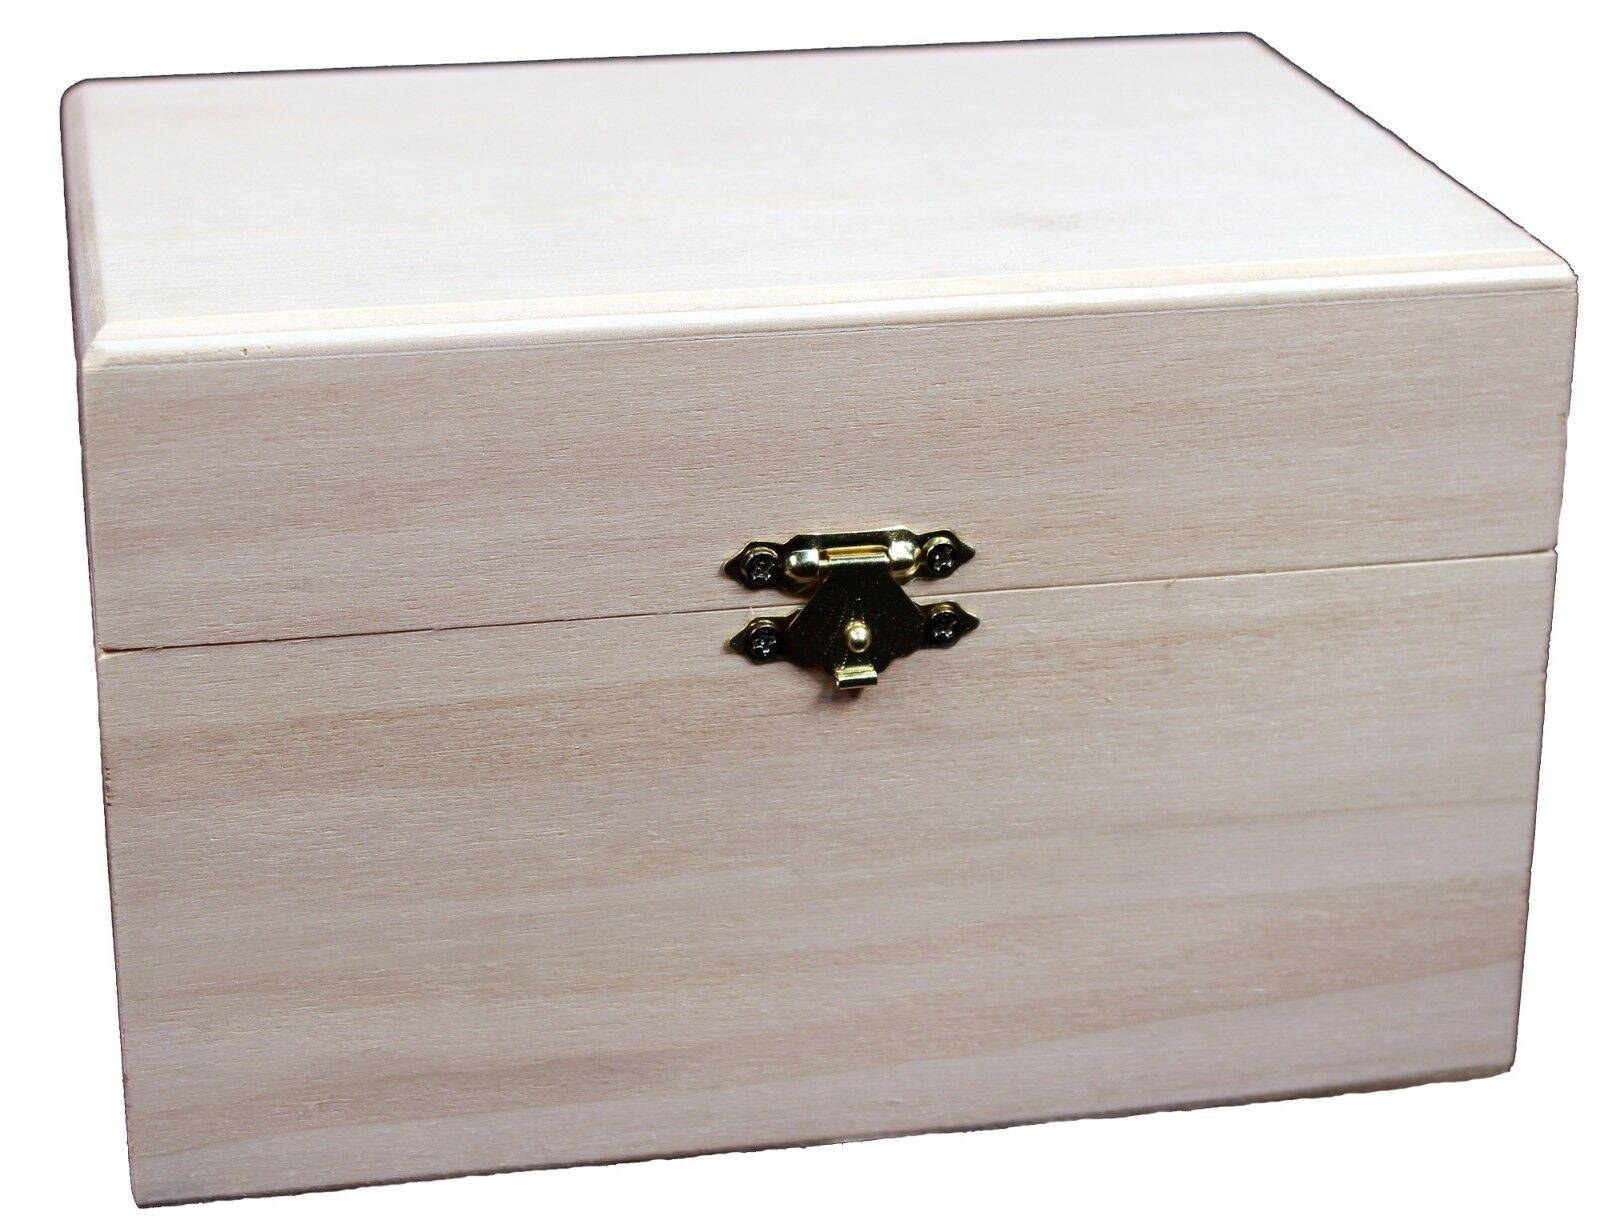 Wooden Recipe Box w/ Hinged Lid & Front Clasp, Unfinished – 6.75″ x 4.5″ x 4.25″ Collectibles